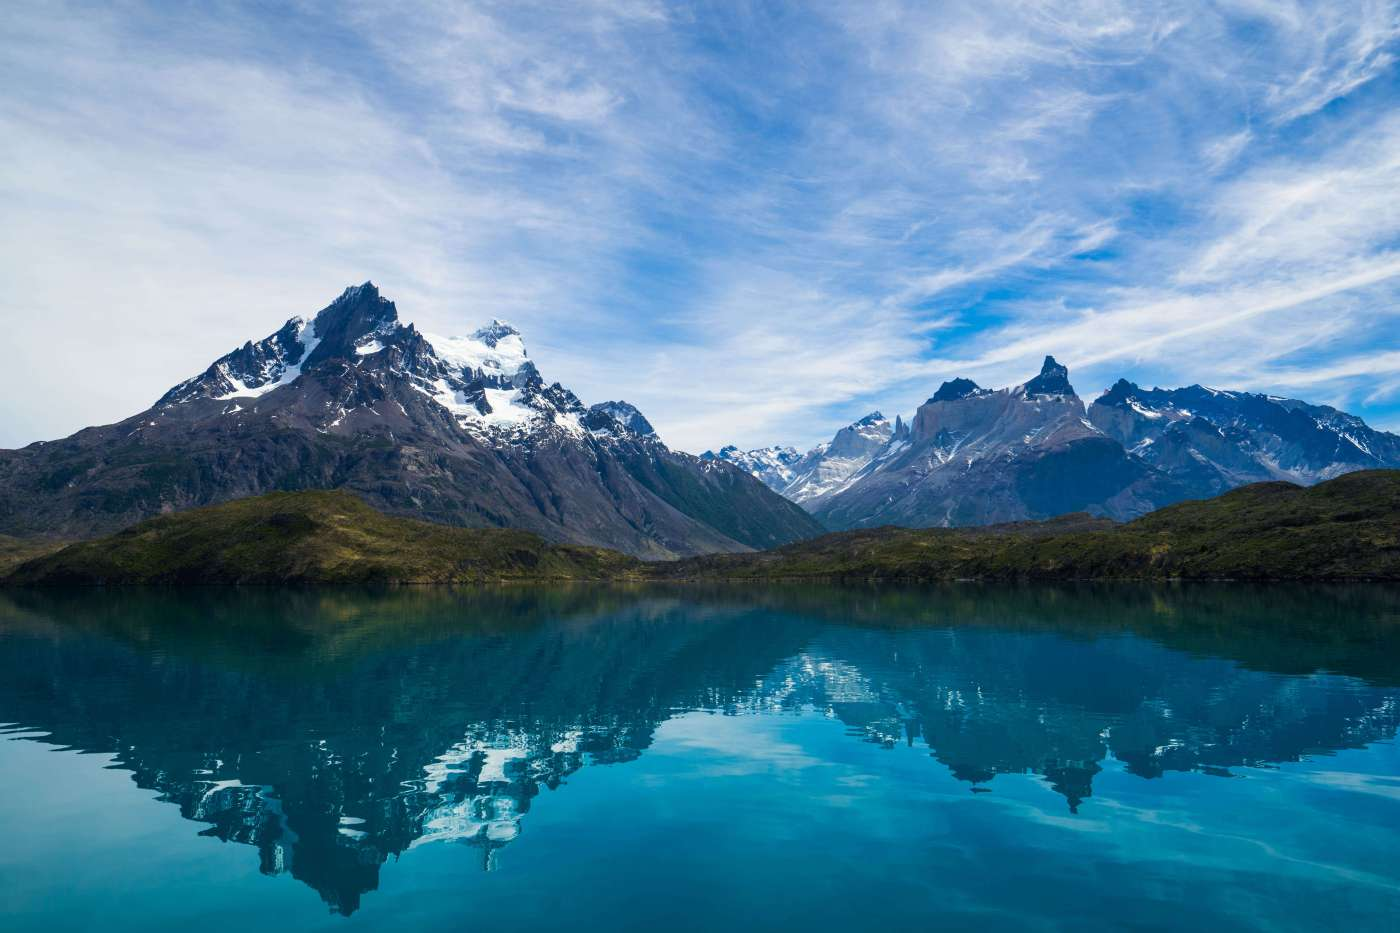 Torres del Paine (W Trek), Chile